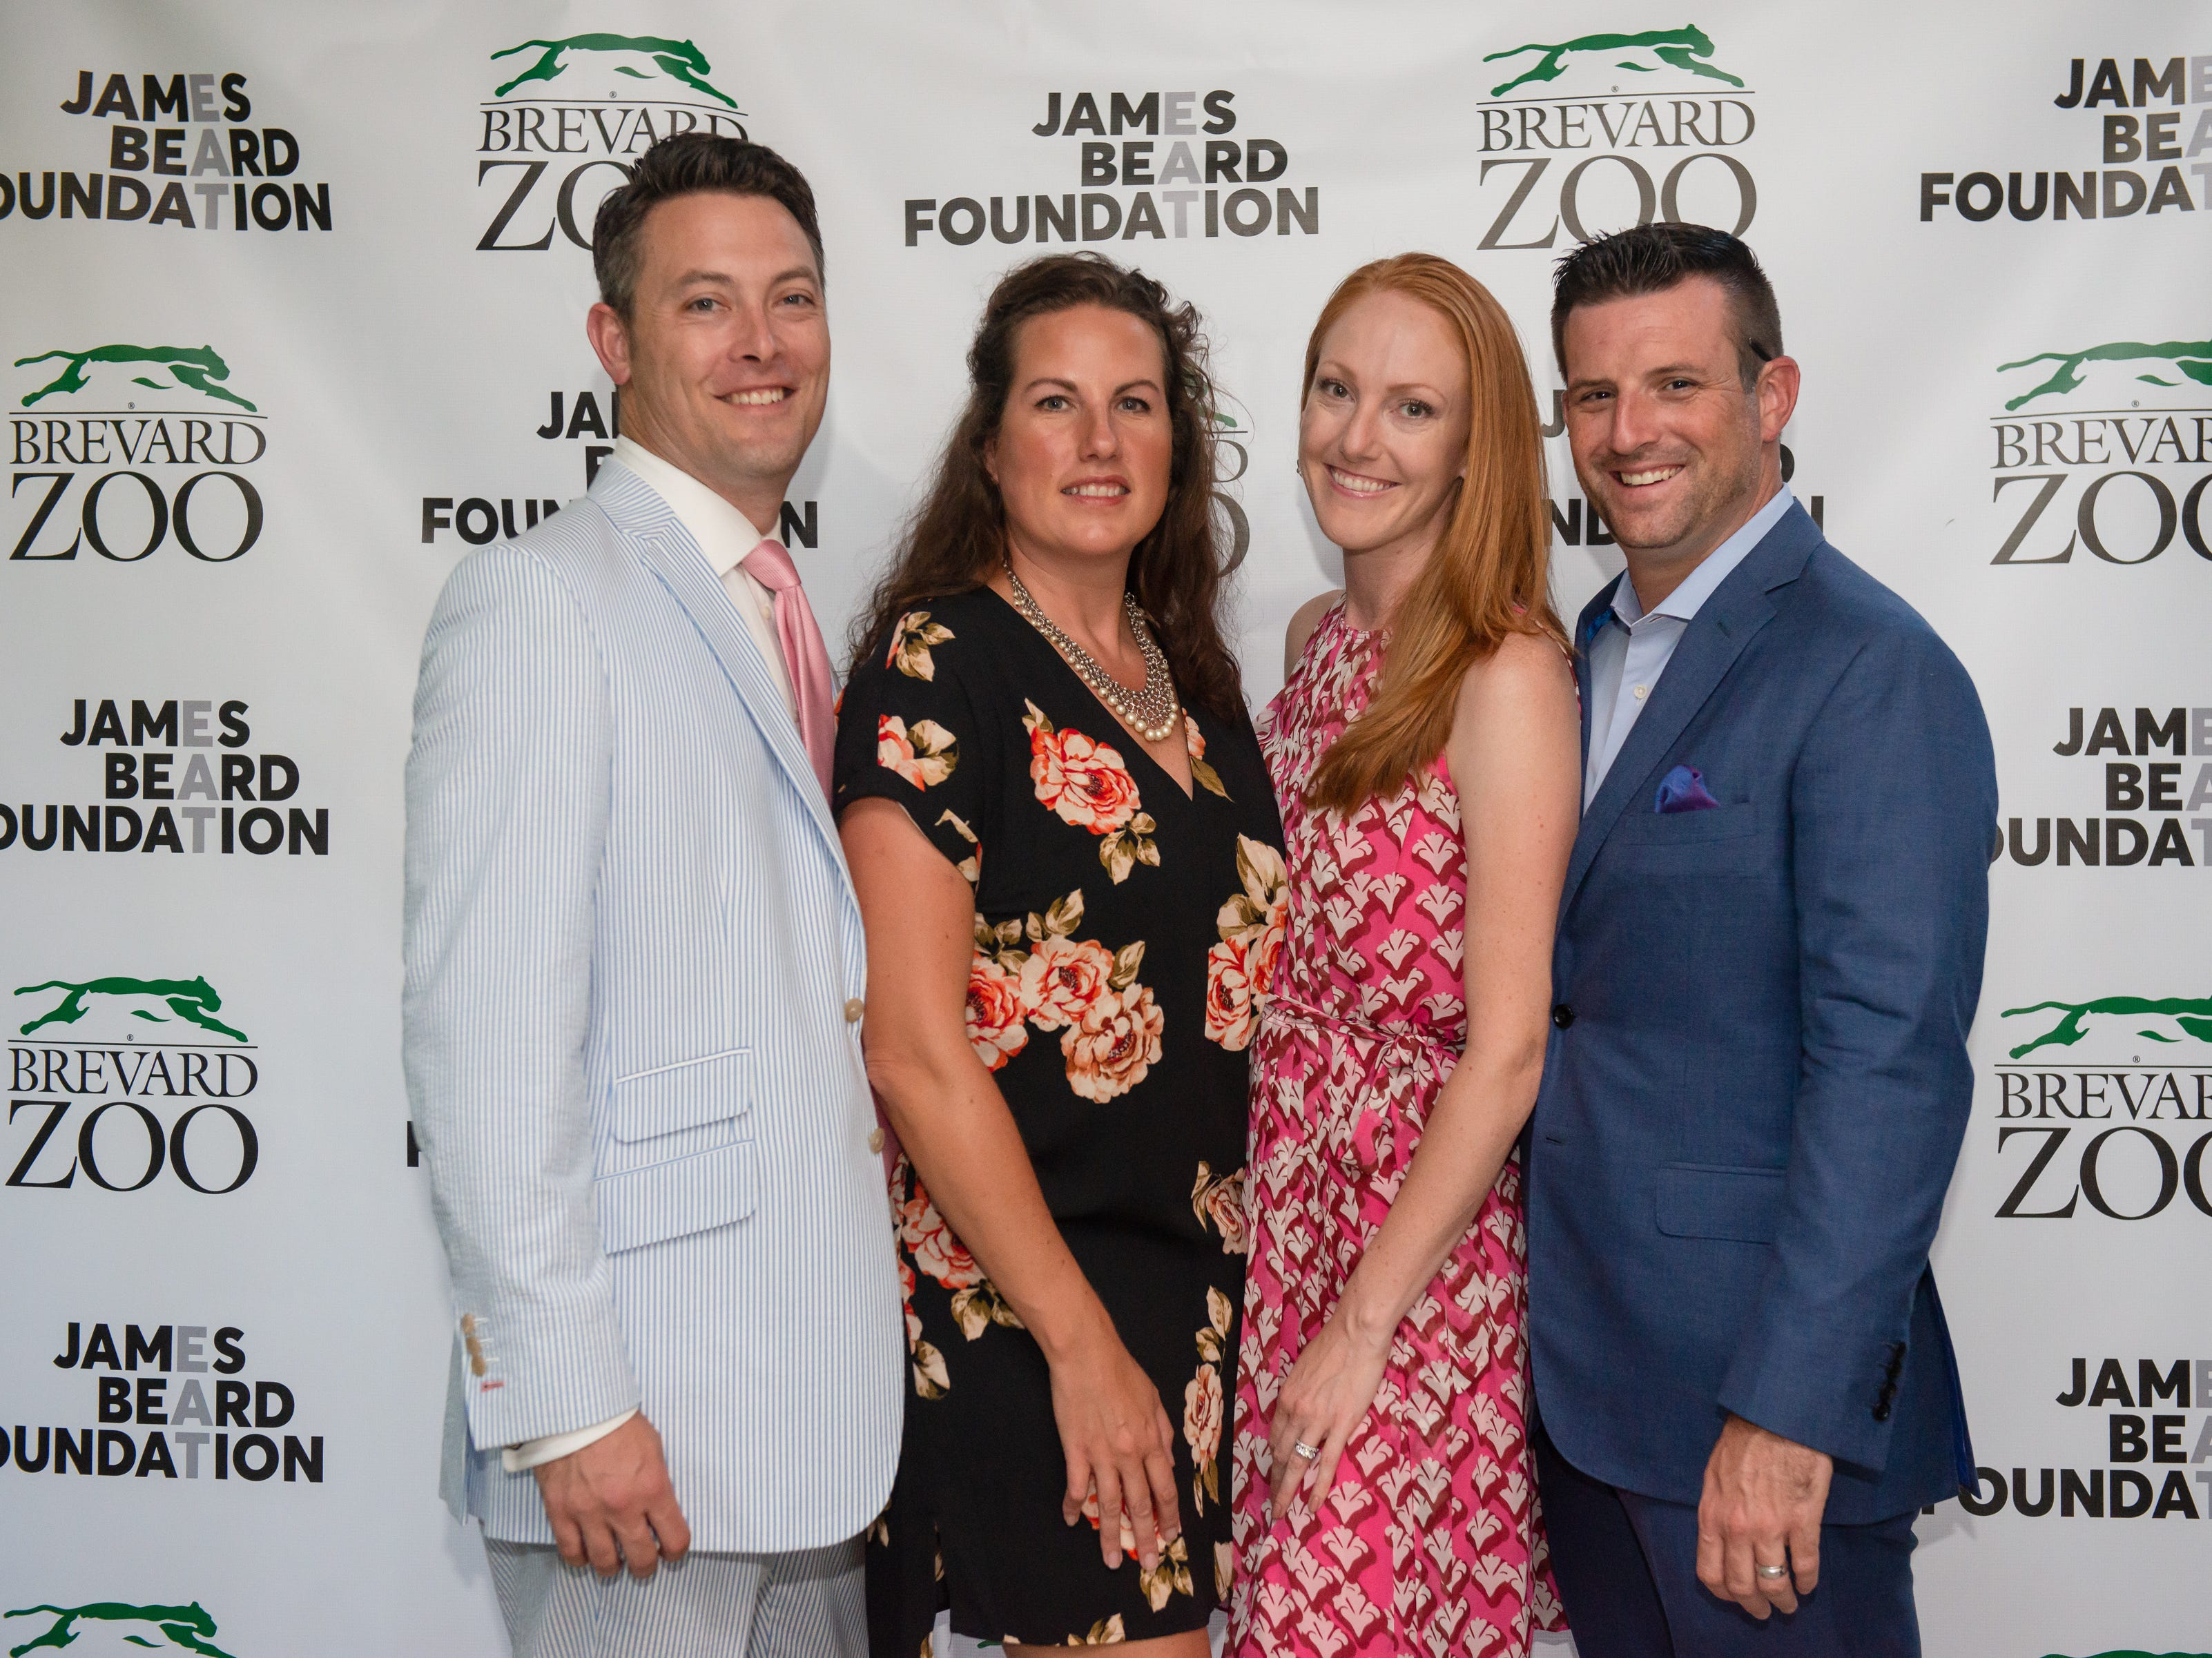 Aaron Hattaway, Robyn Hattaway, Stephanie McLoughlin and PJ McLoughlin at the James Beard Foundation Celebrity Chef Dinner held at the Brevard Zoo. (Photo by Amanda Stratford, for FLORIDA TODAY)